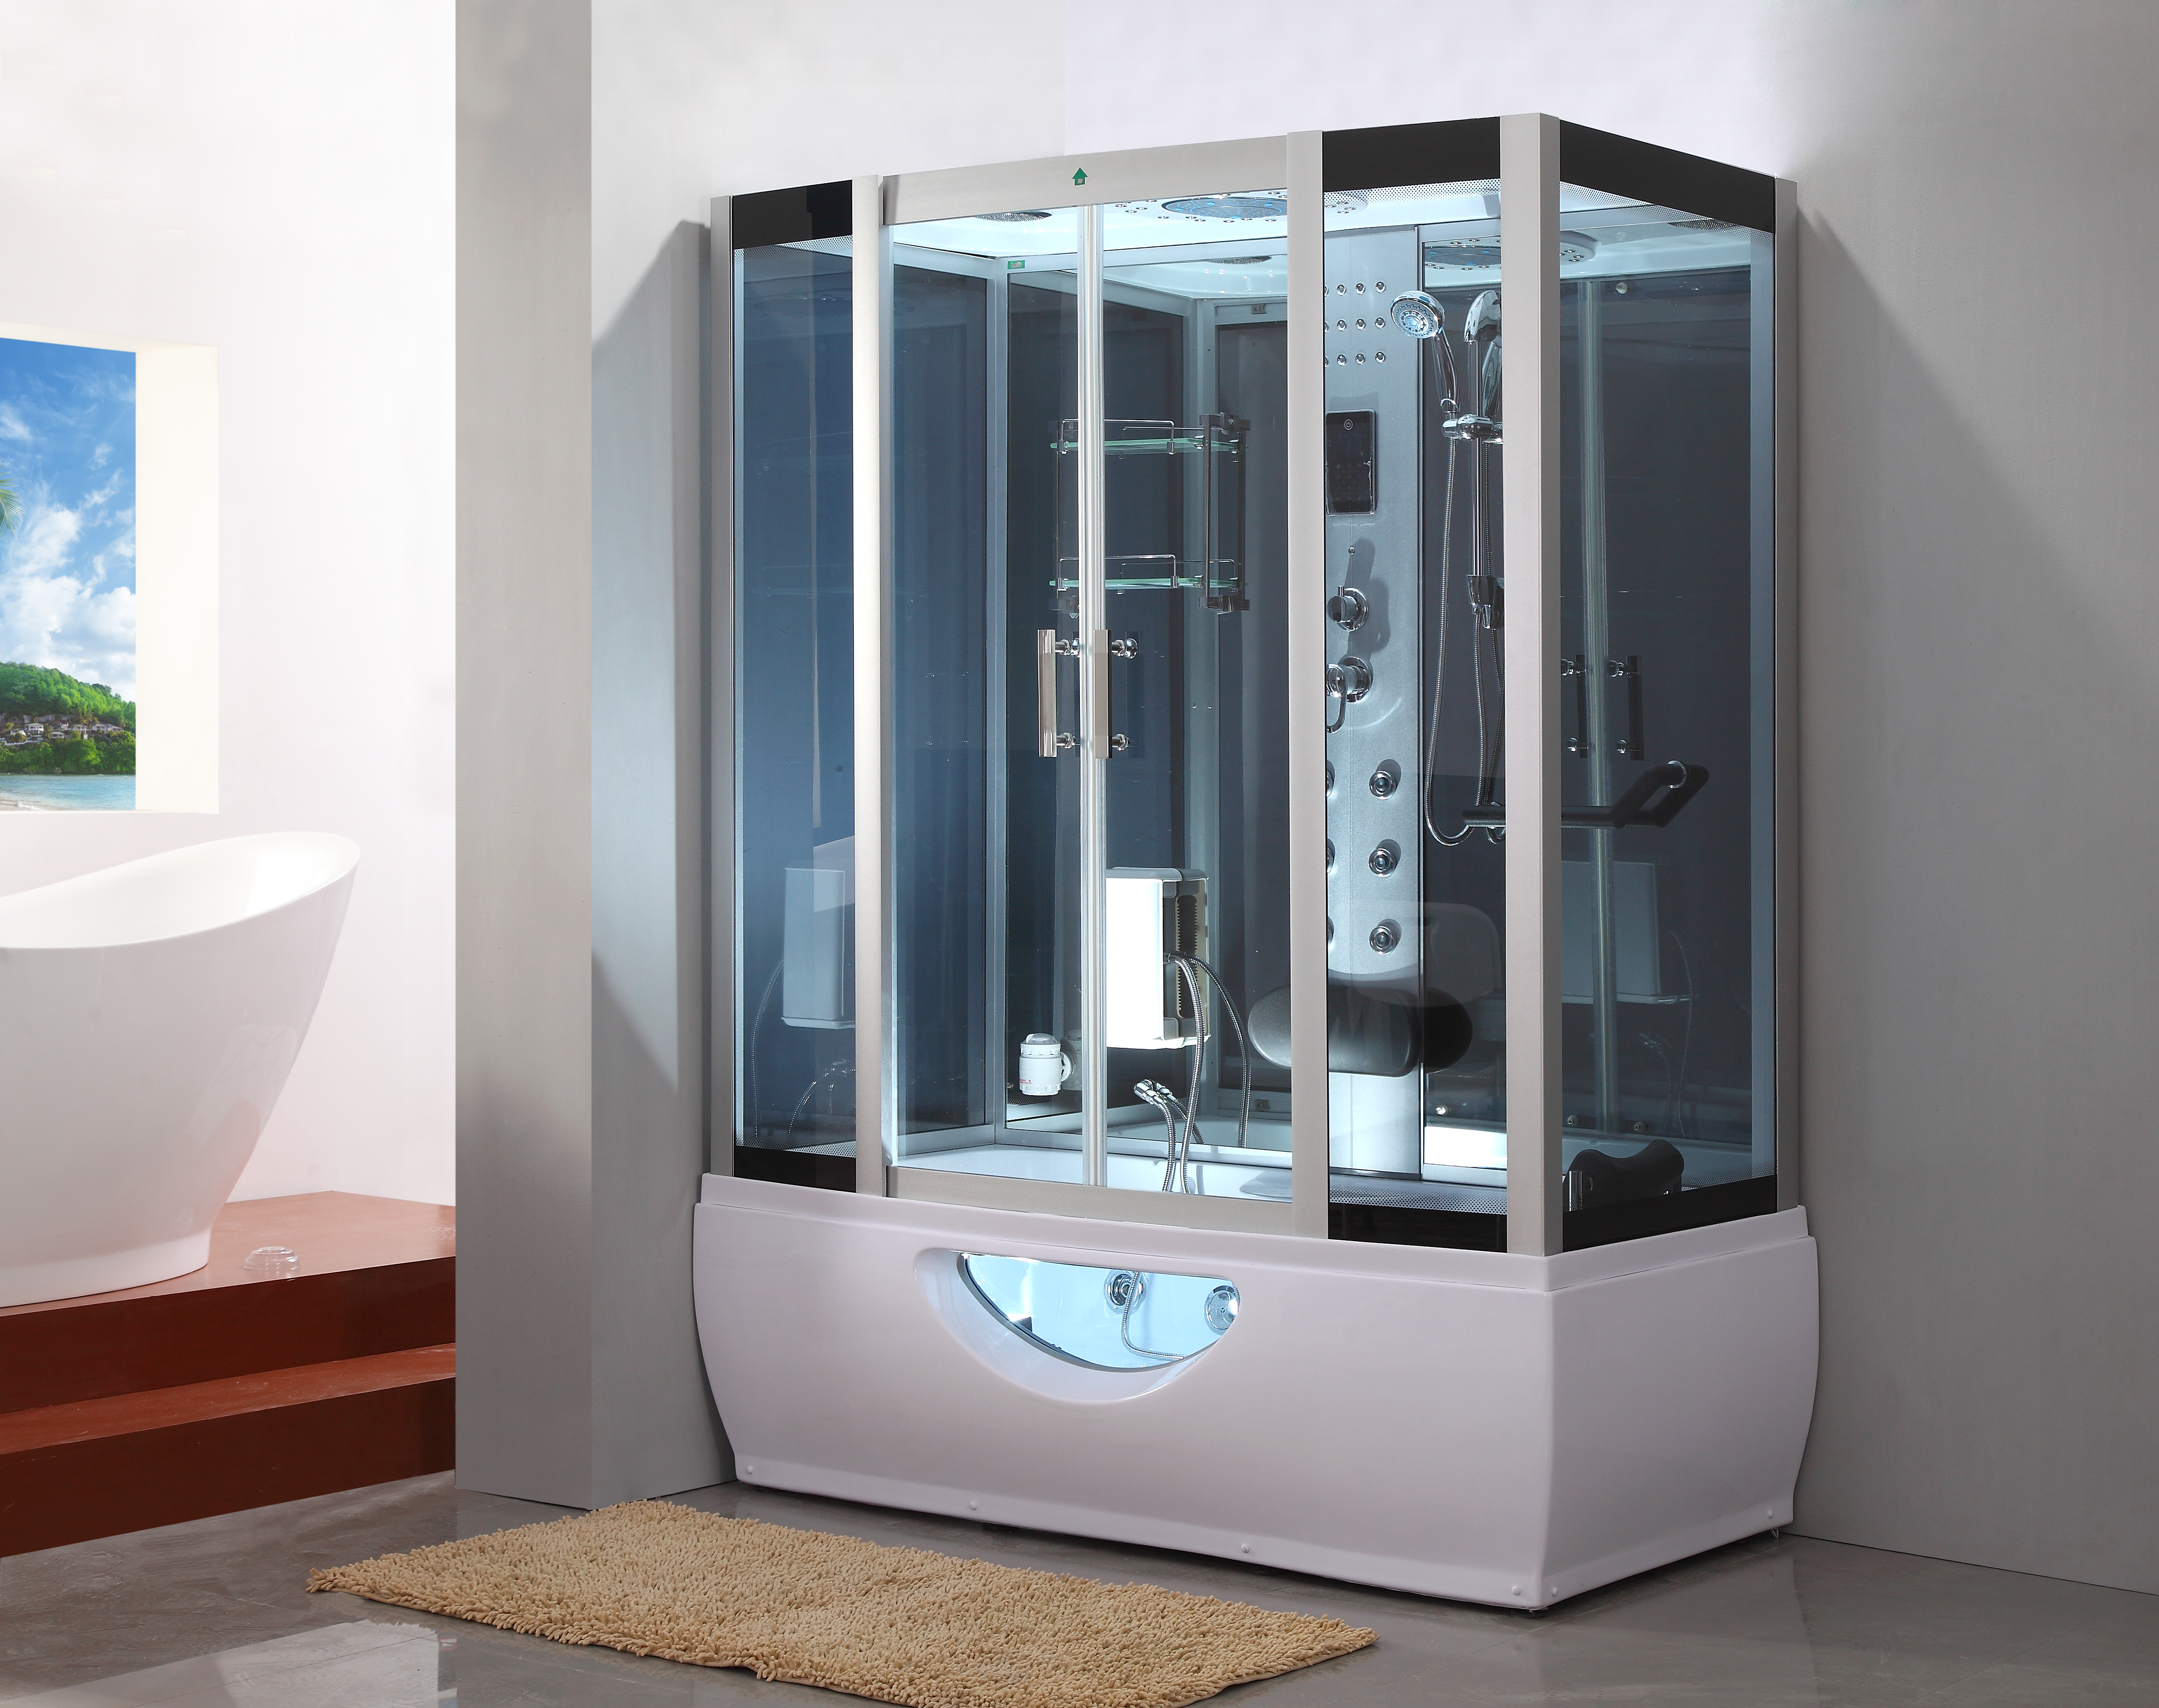 1001now Gt007 Rectangle Steam Shower Enclosure Whirlpool Tub 67 X 35